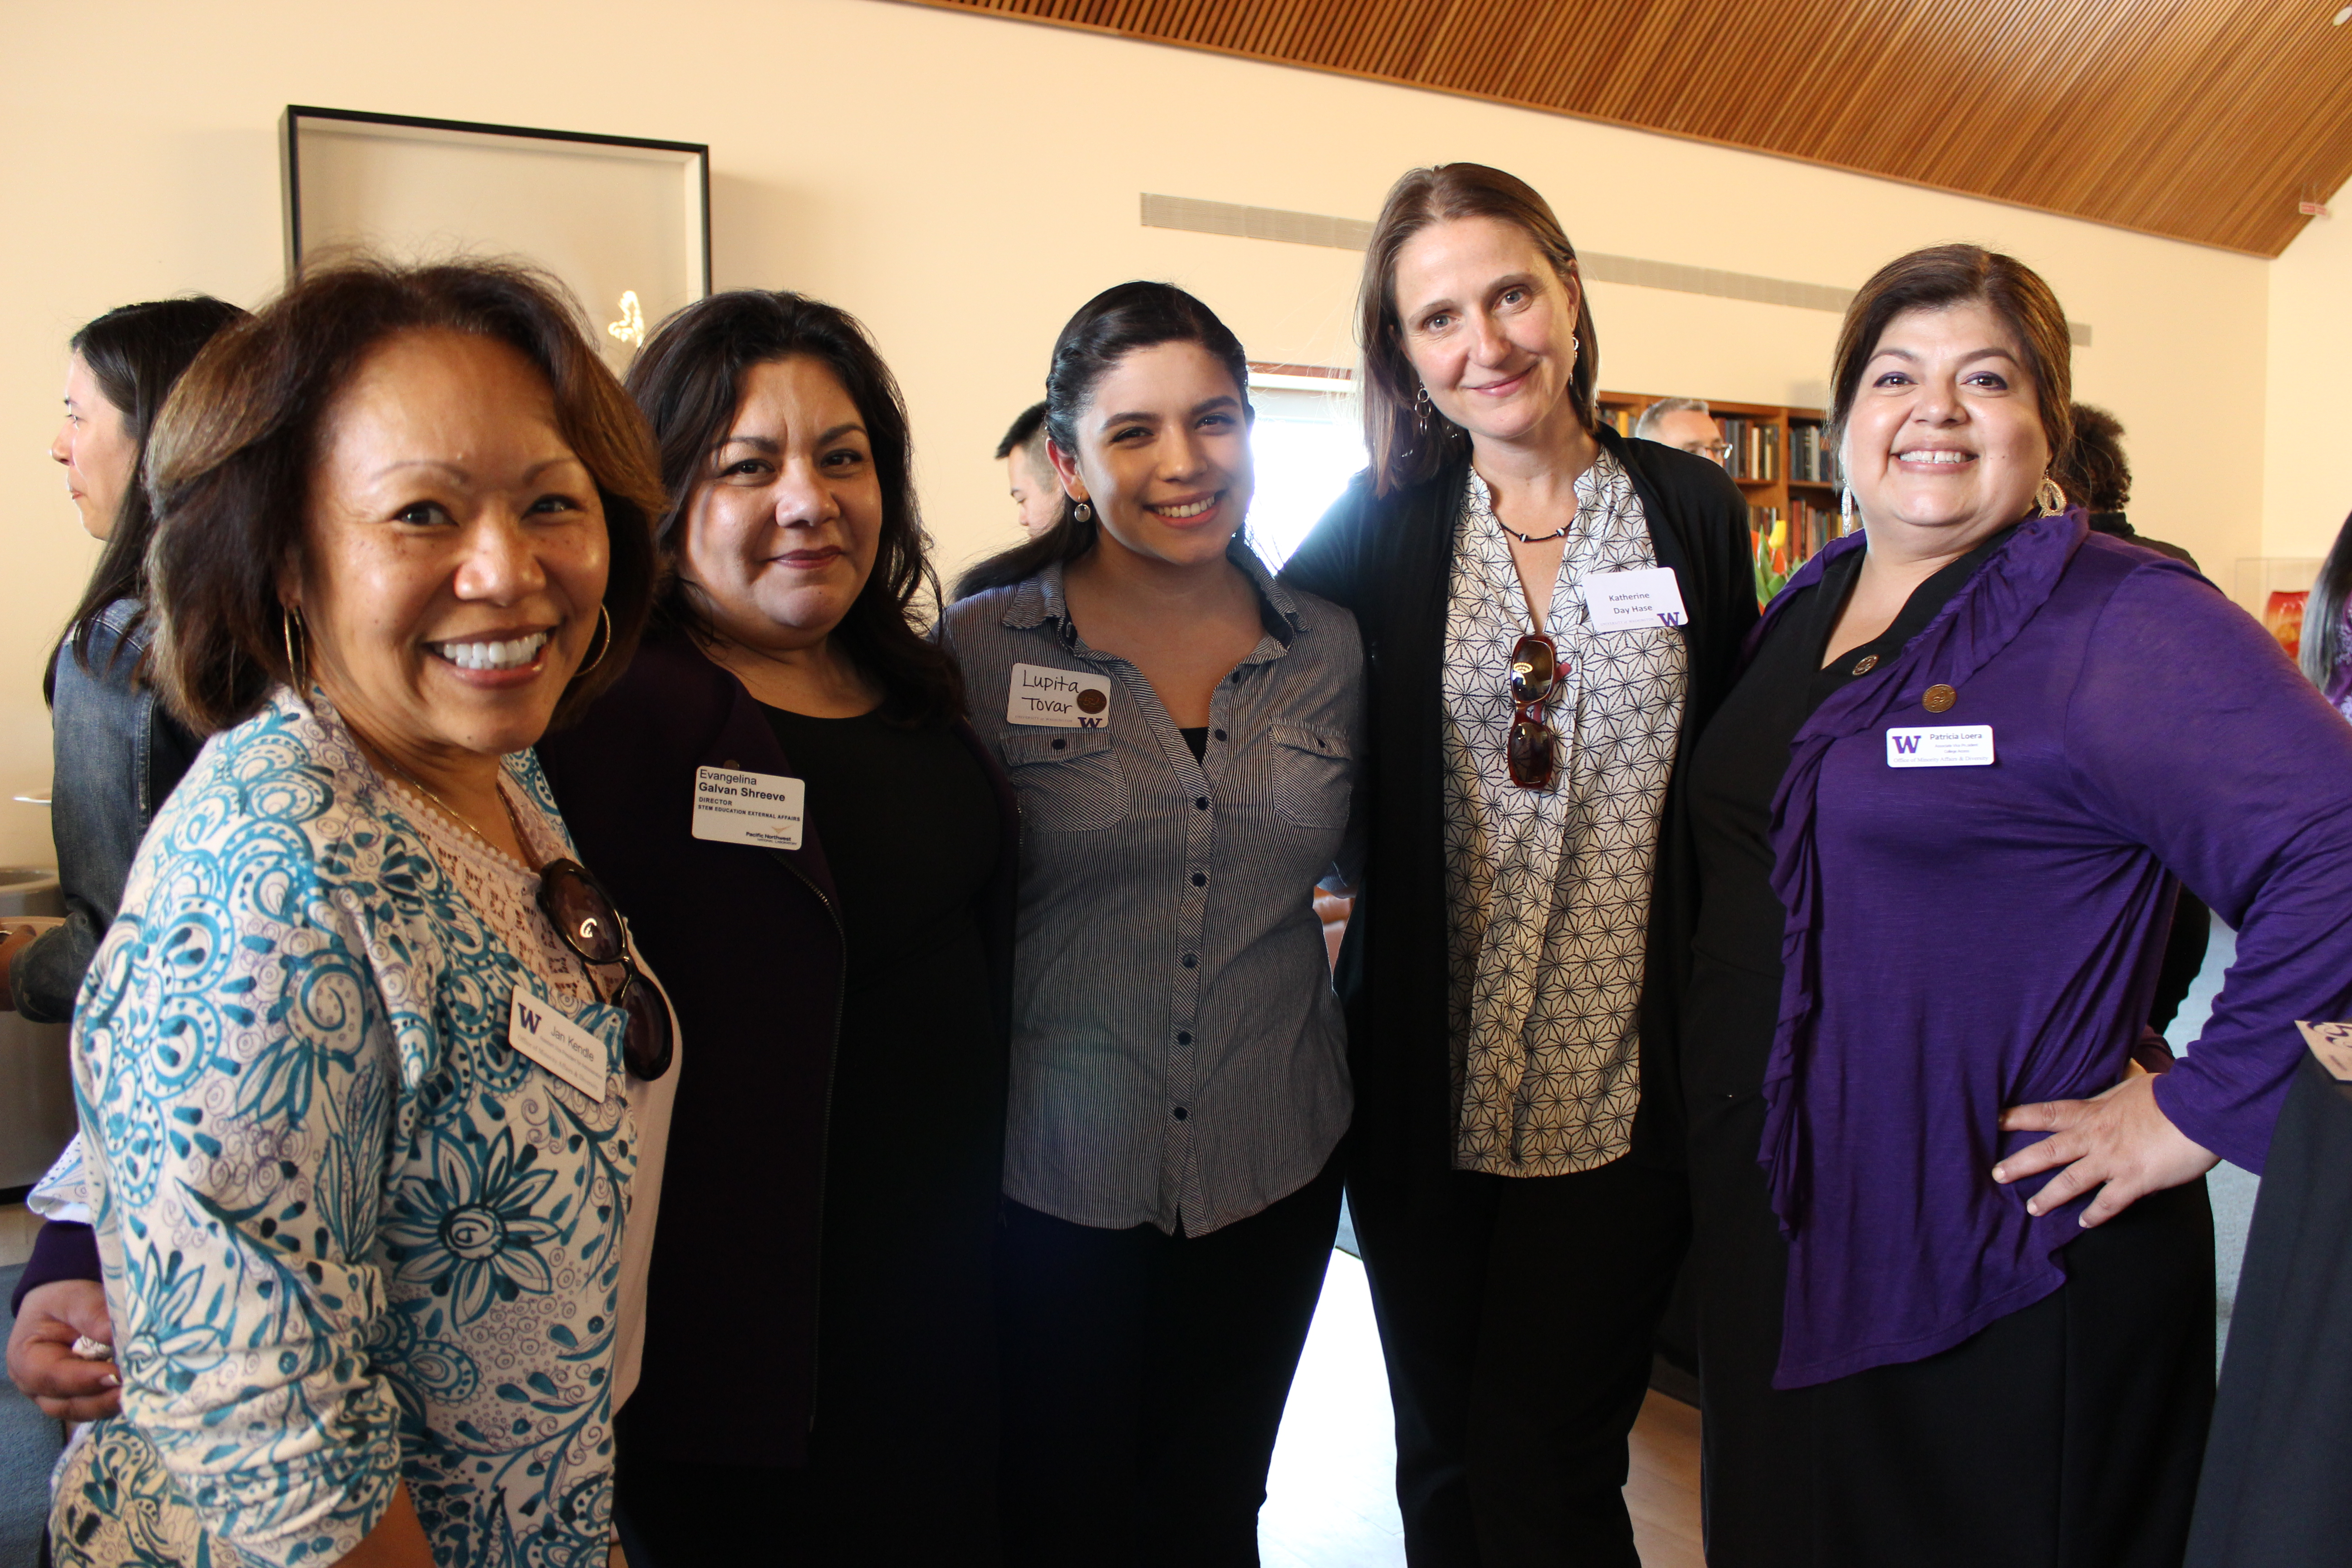 Photo of Evangelina Galvan Shreeve with colleagues at a 2018 event for the University of Washington's Office of Minority Affairs & Diversity. Photo is courtesy of the University of Washington.